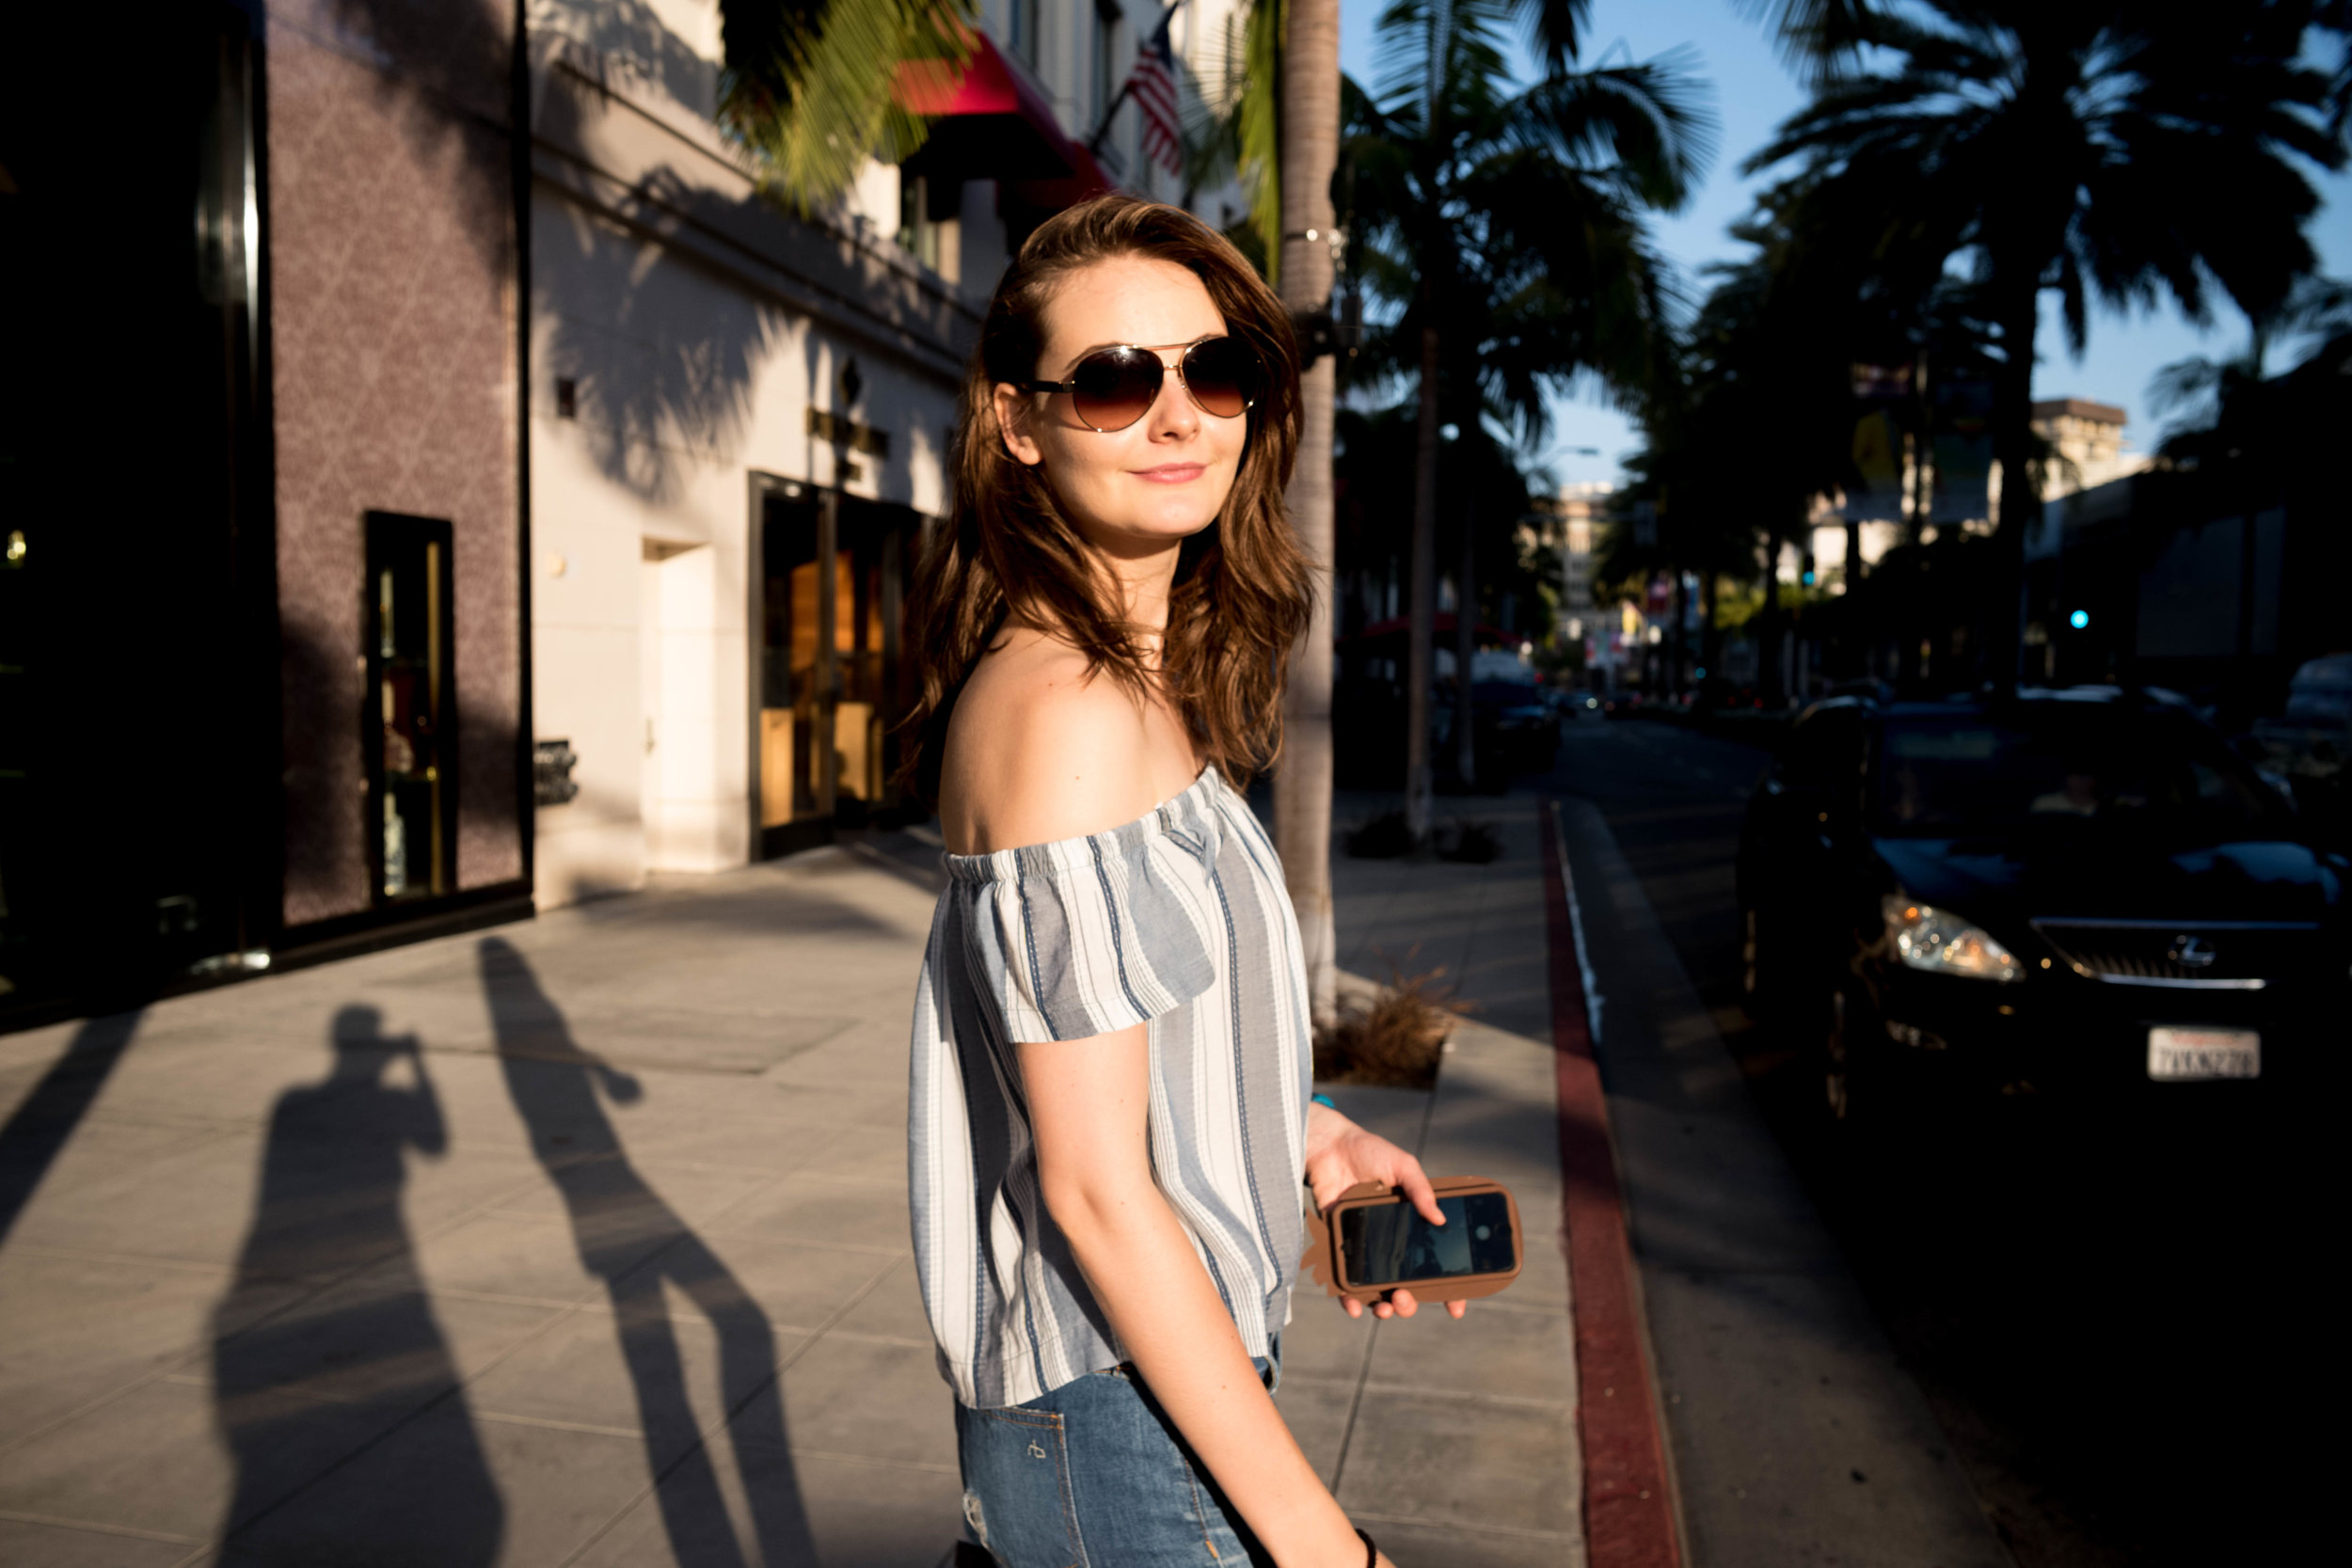 Now on Rodeo Drive. Leica 28mm f/1.4 Summilux ASPH